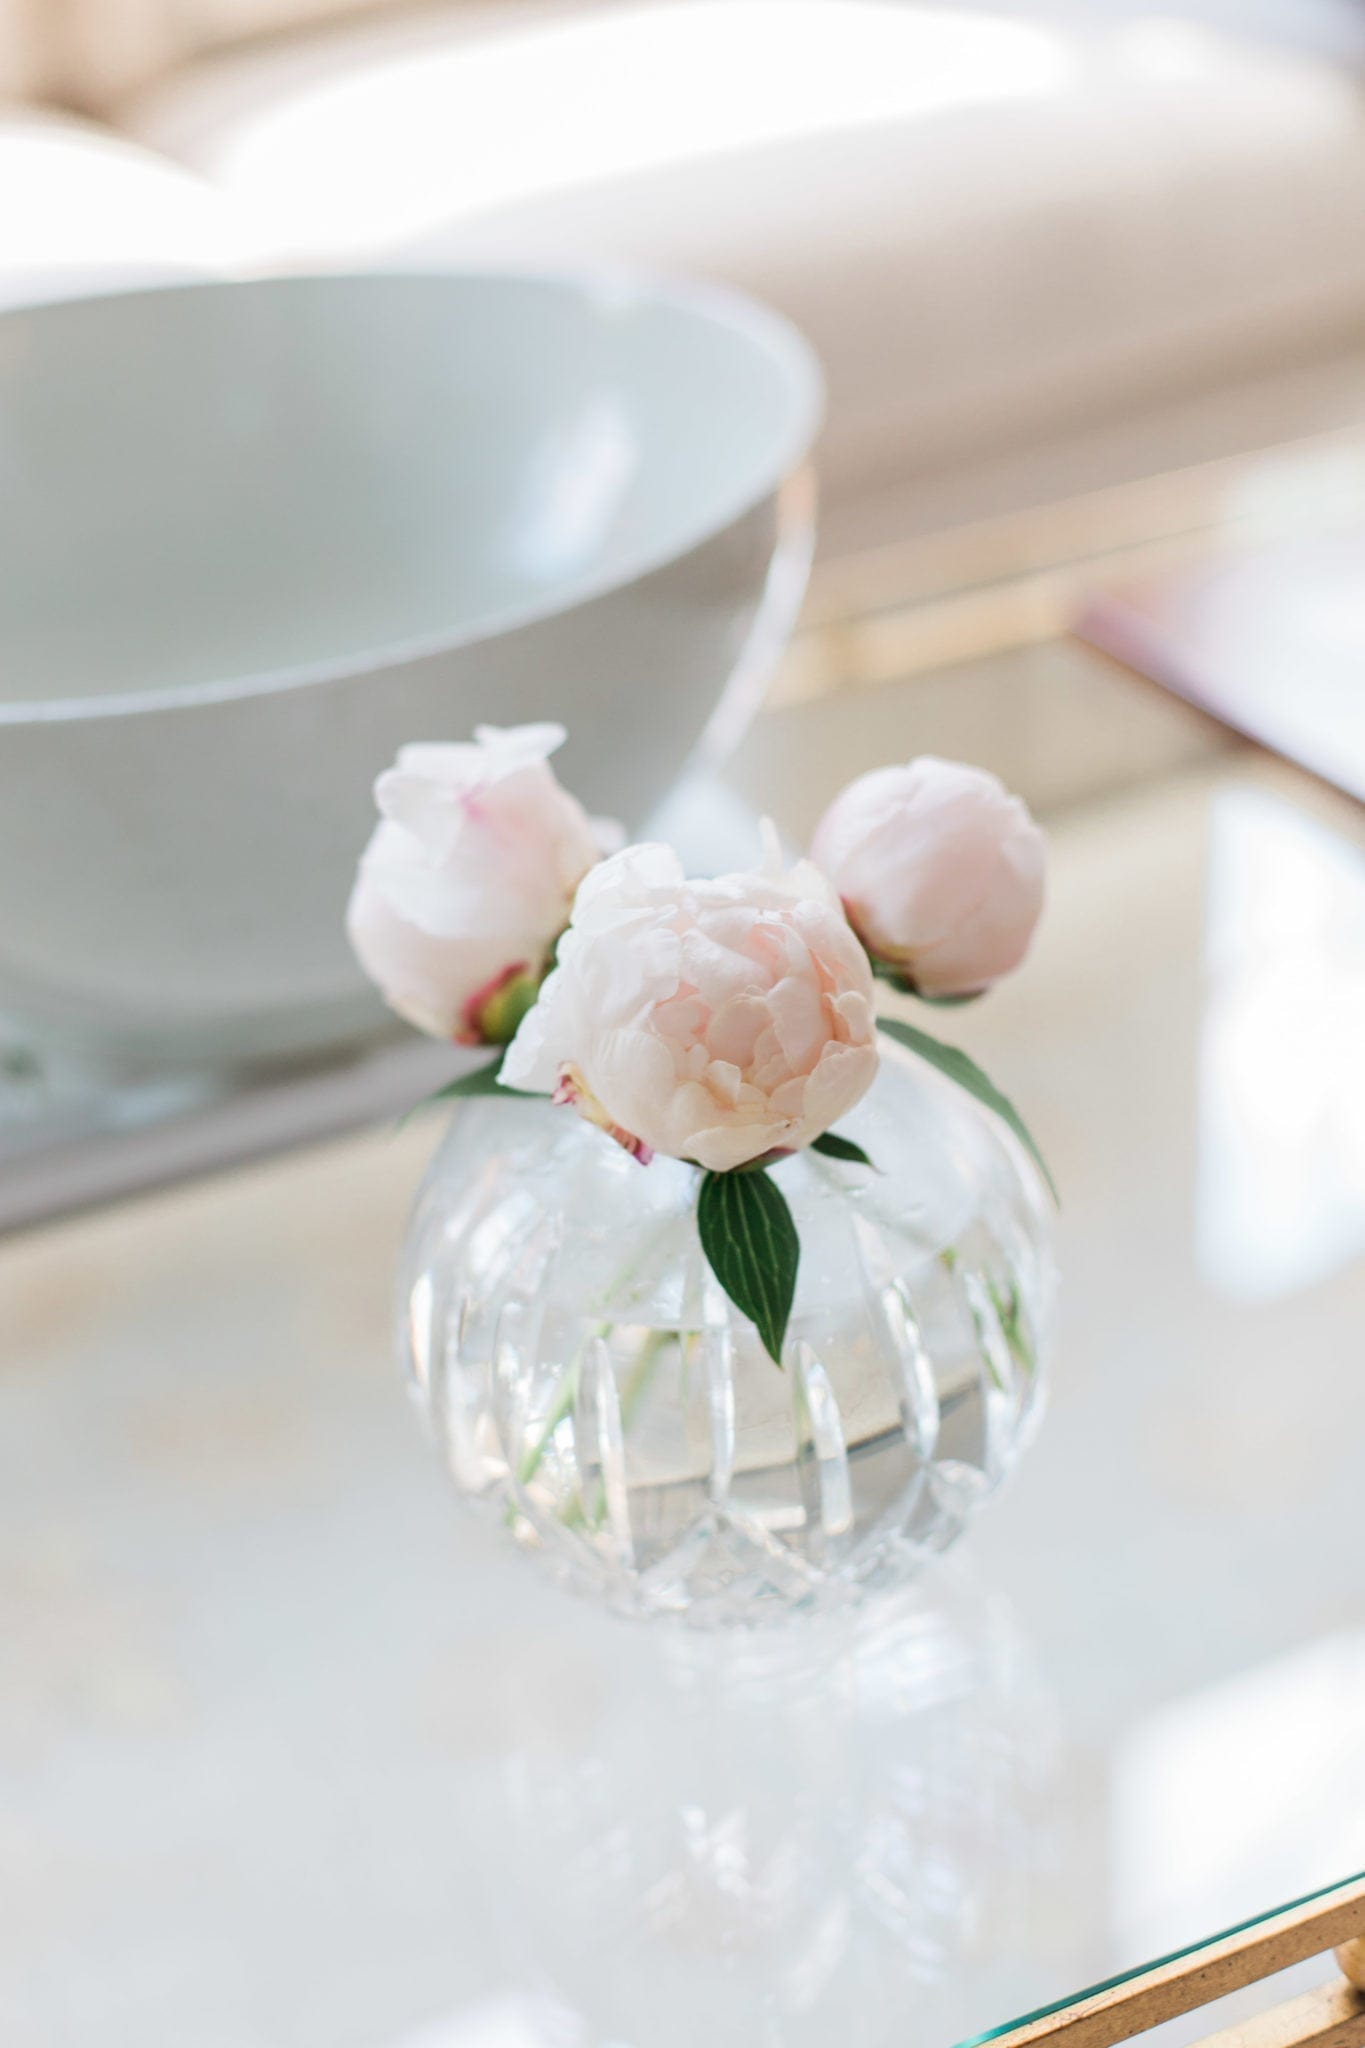 Soft pink peony blooms in Waterford Vase. How to cut peony blooms.